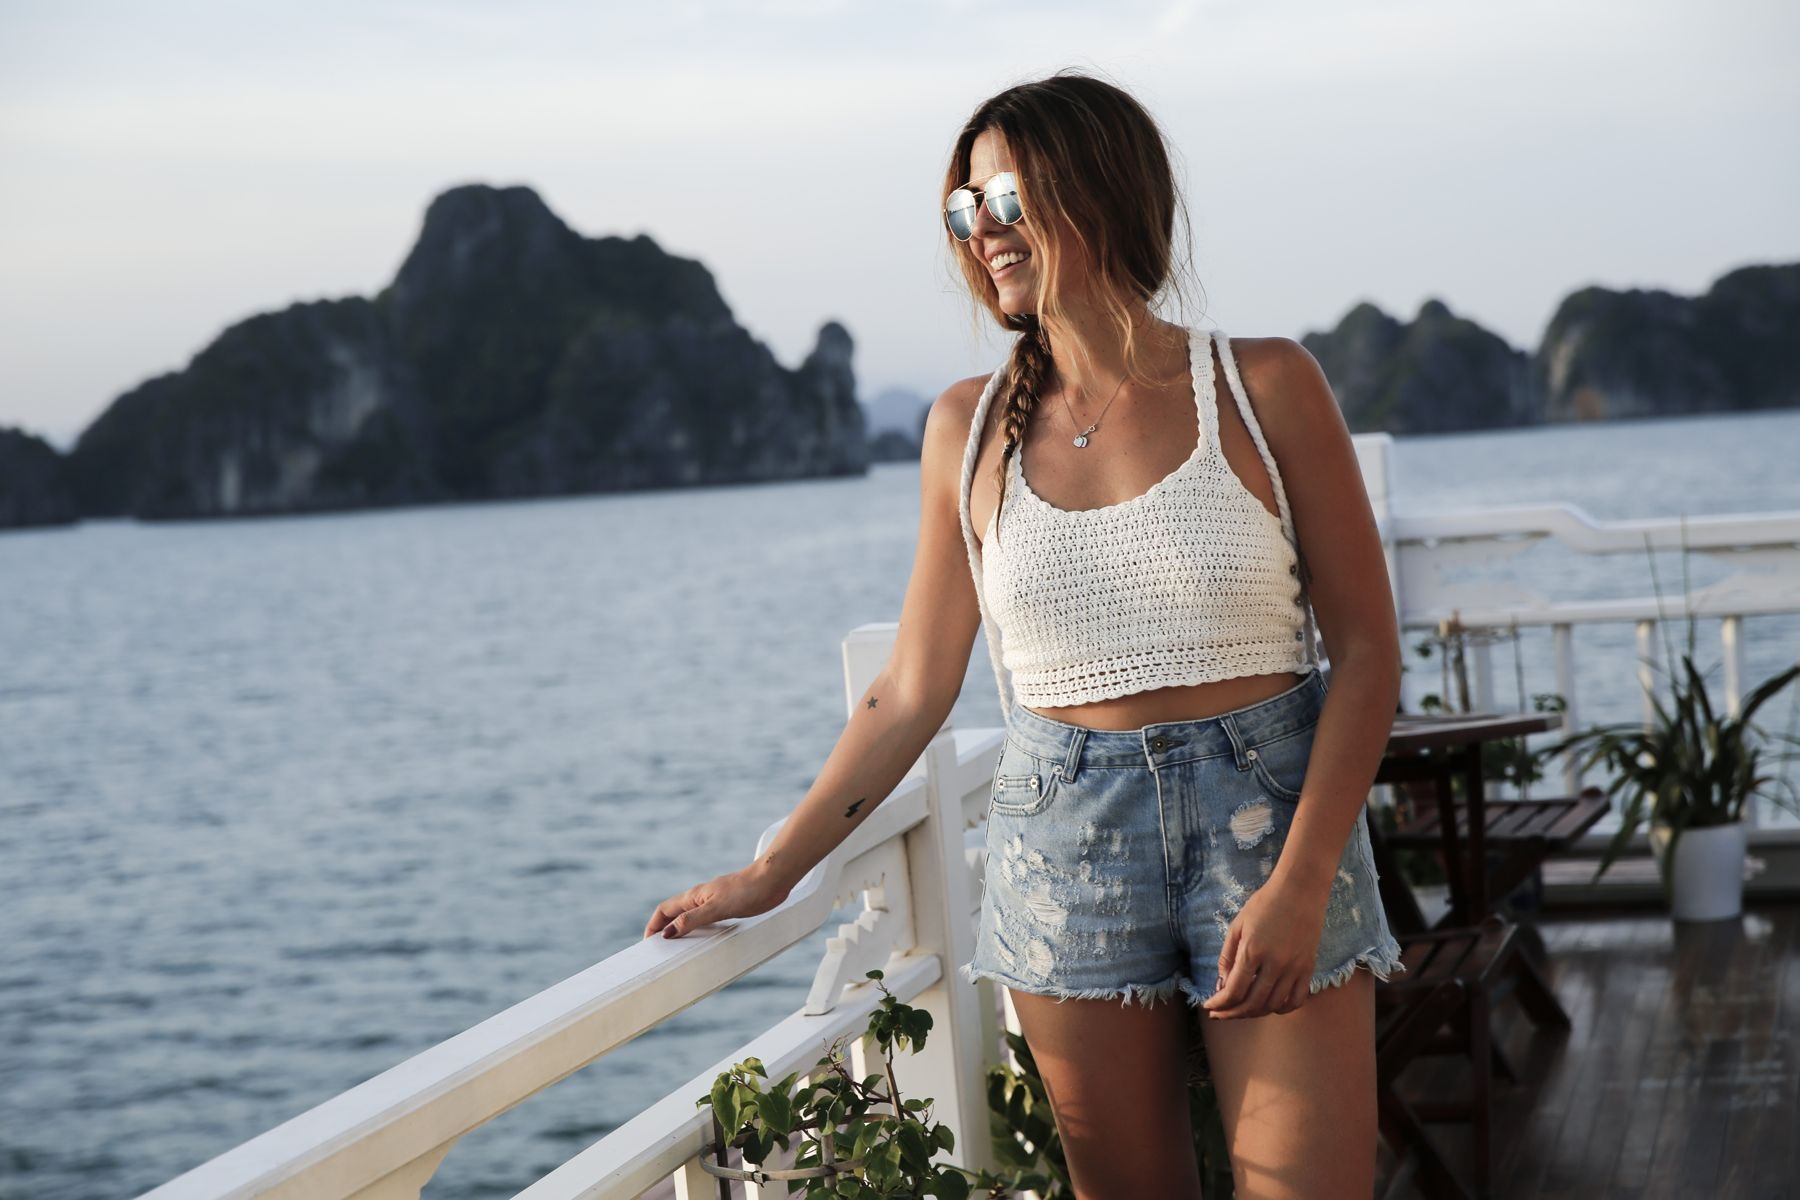 halong bay bahia vietnam excursiones barco trendy taste summer outfit look havaianas shorts denim top crochet pull and bear sunglasses_14